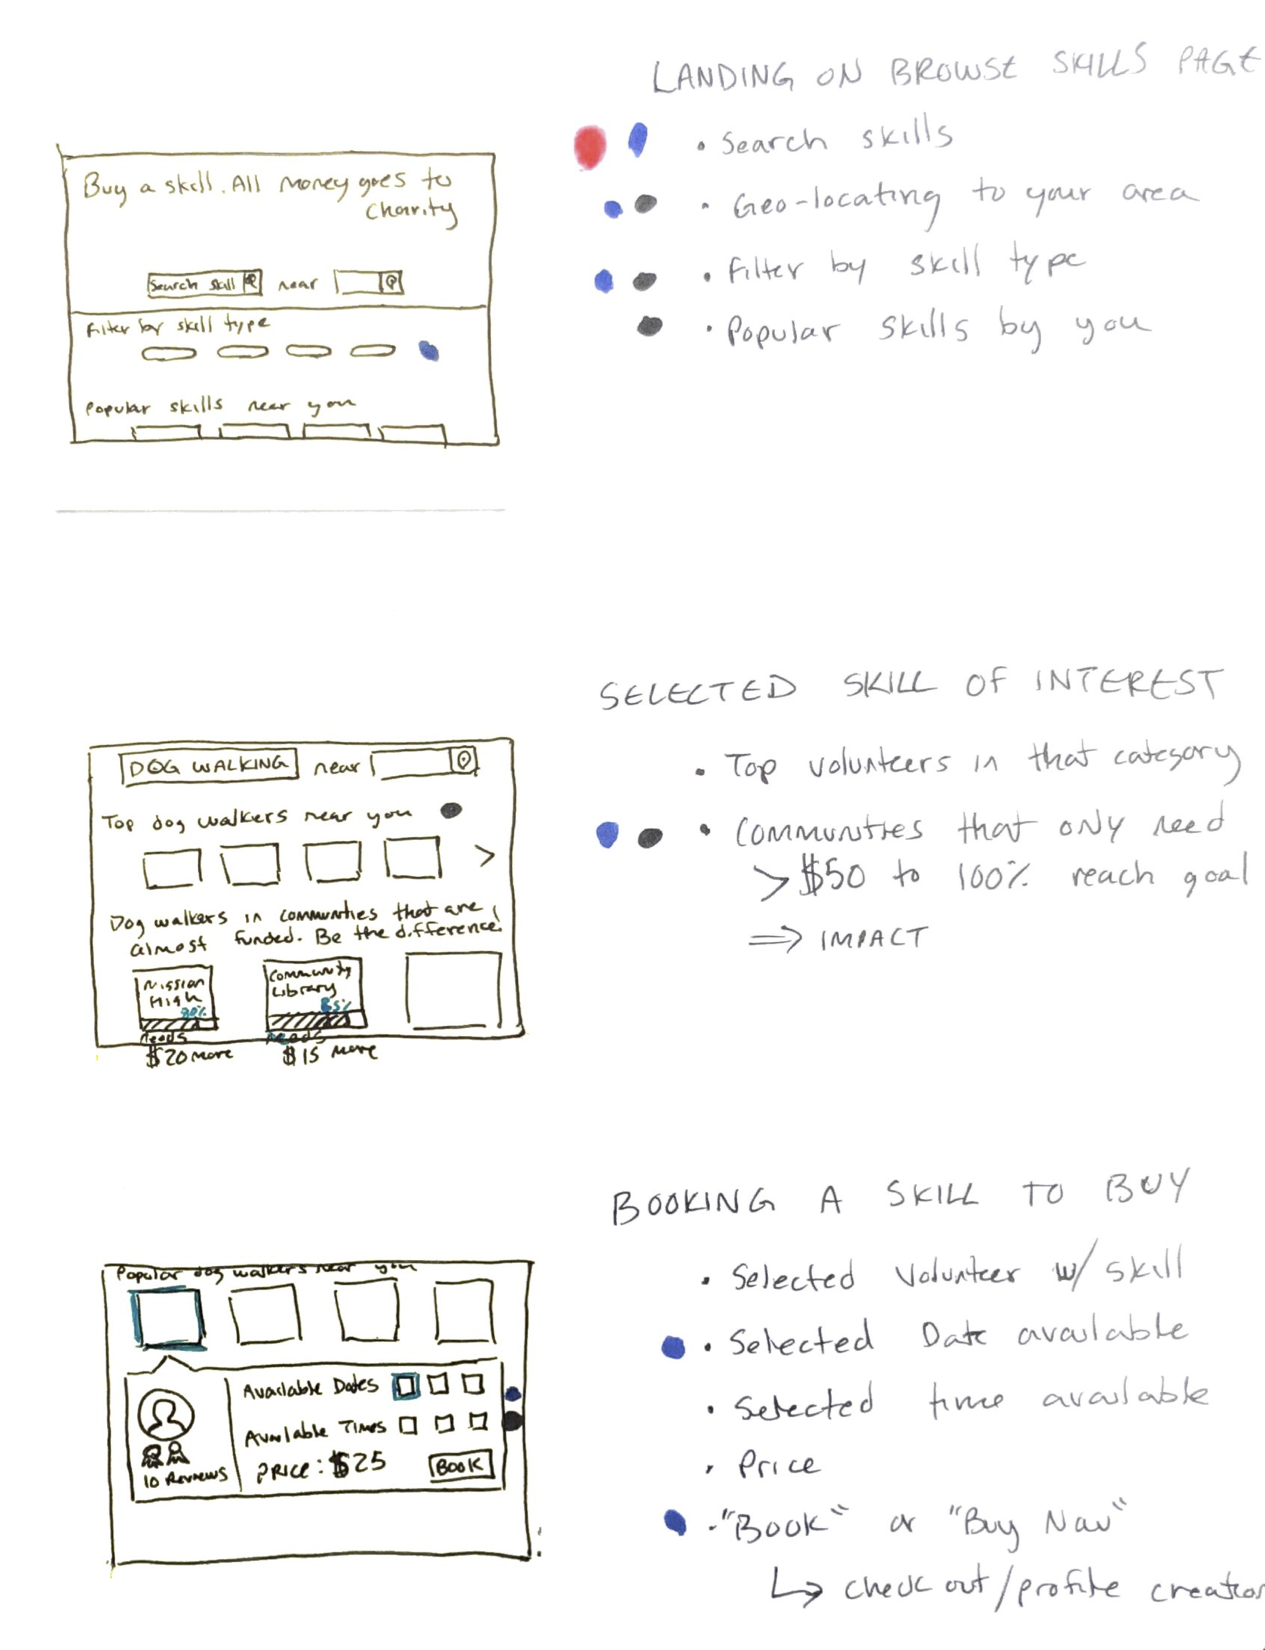 Storyboard that I drew that shows the flow from the landing page to booking a volunteer